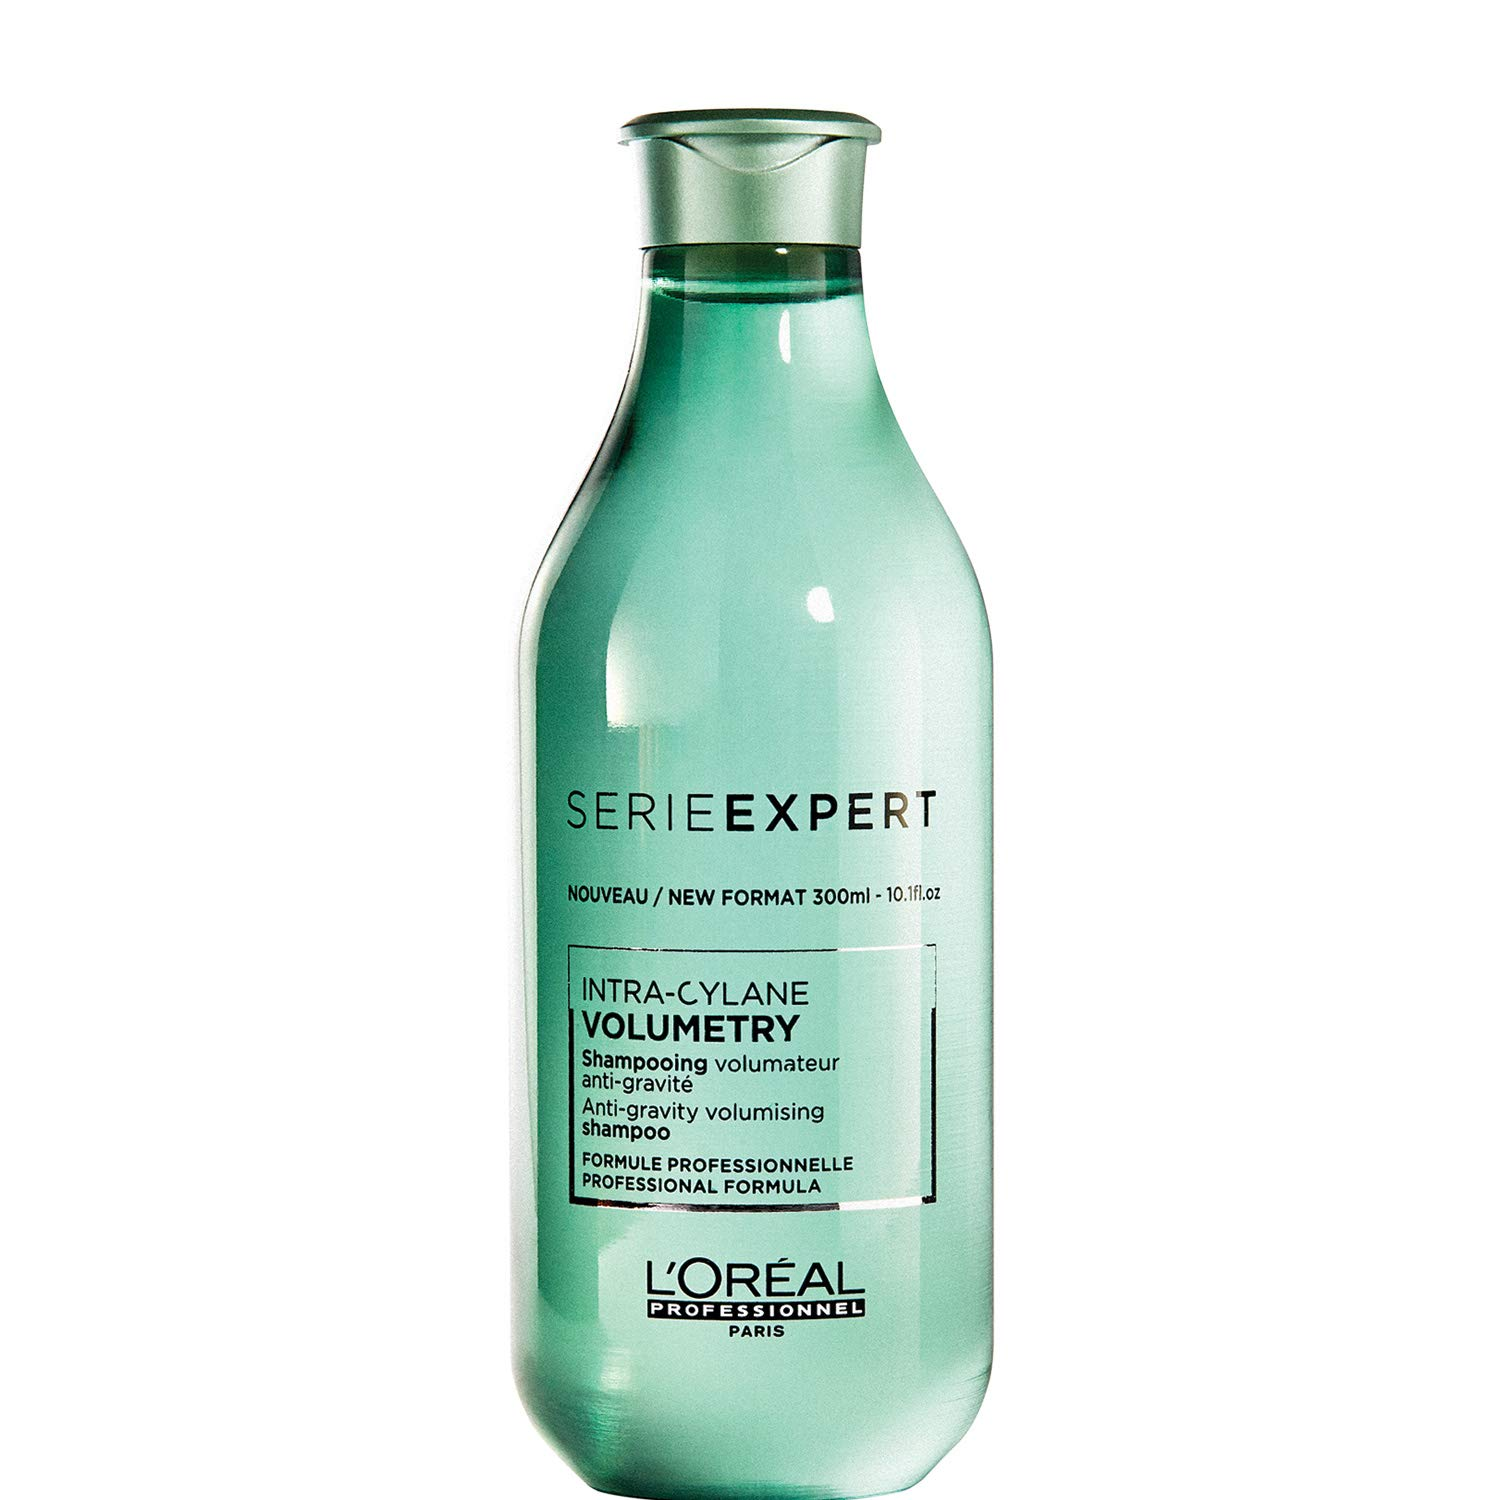 L'Oréal Professionnel | Serie Expert | Volumetry Shampoo | For Fine, Flat Hair | 300 ml